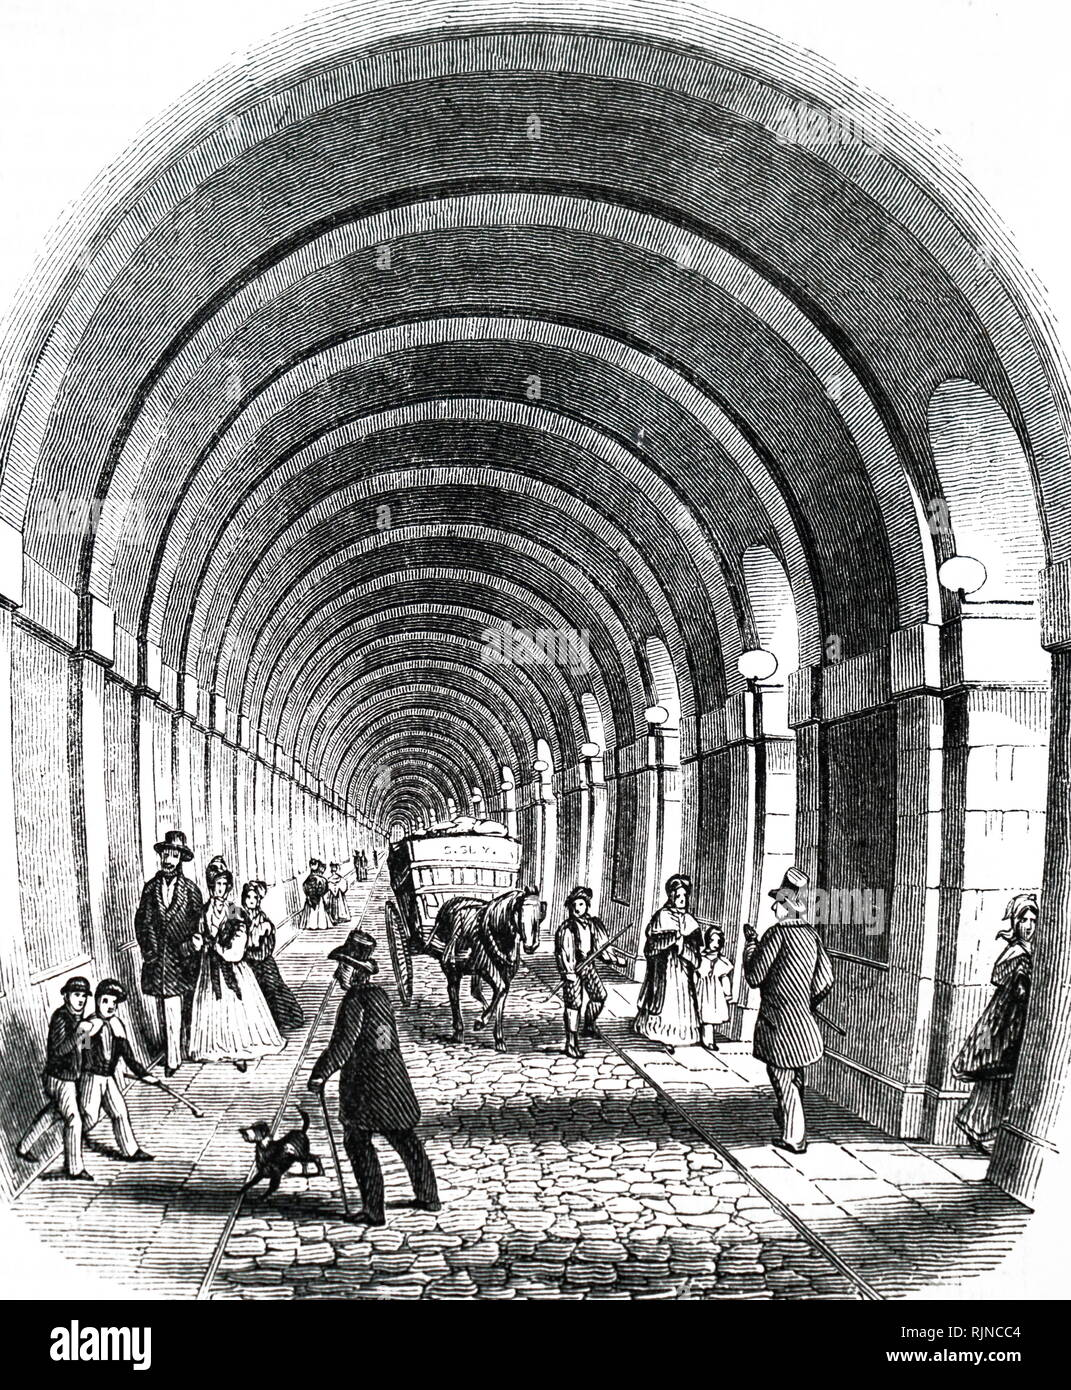 An engraving depicting the Thames Tunnel. Dated 19th century Stock Photo